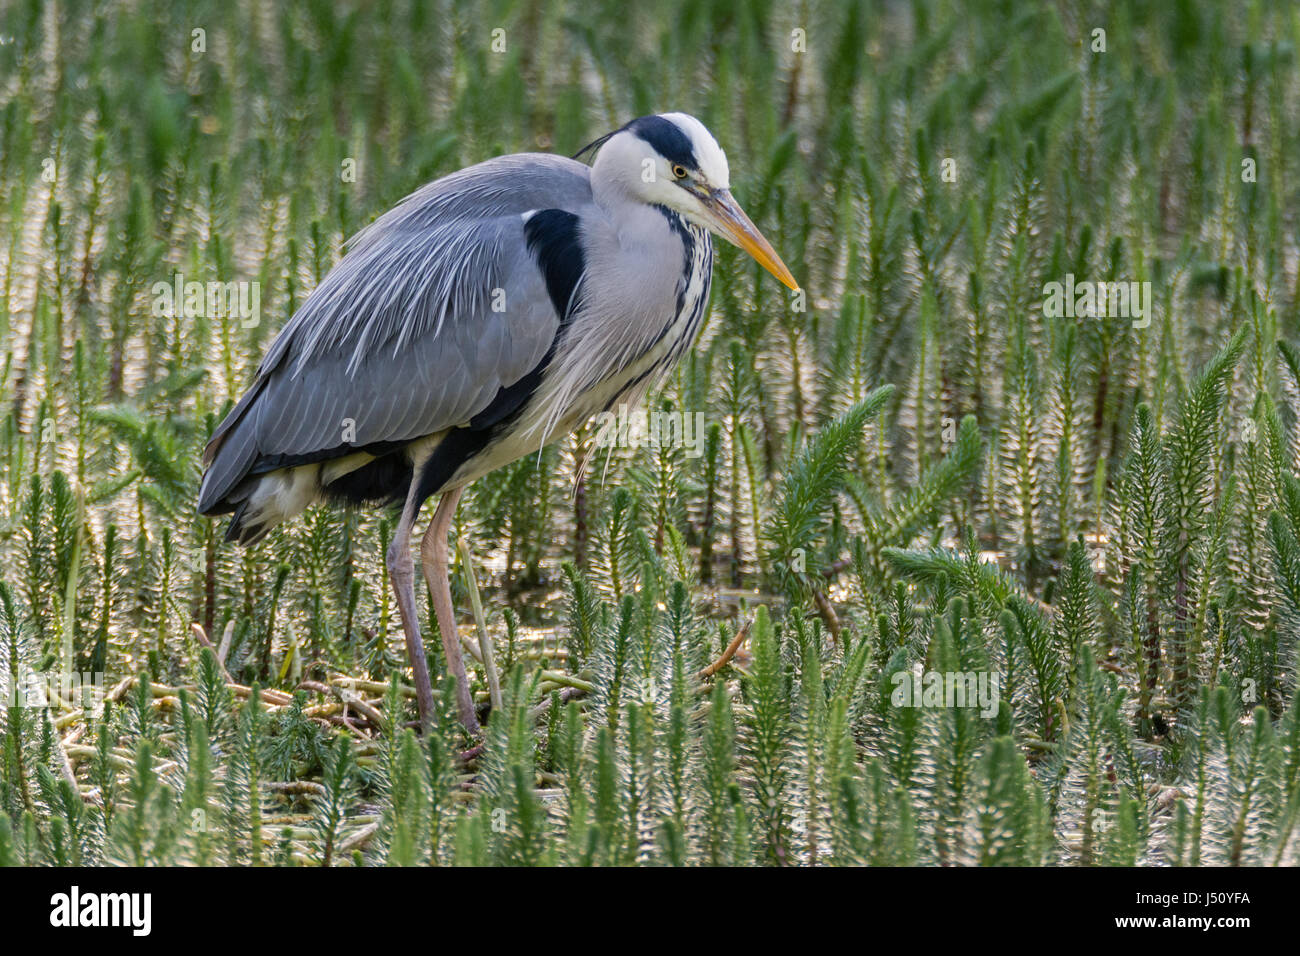 Grey heron (Ardea cinerea) hunting amongst vegetation. Large water bird in the family Ardeidae looking for fish Stock Photo